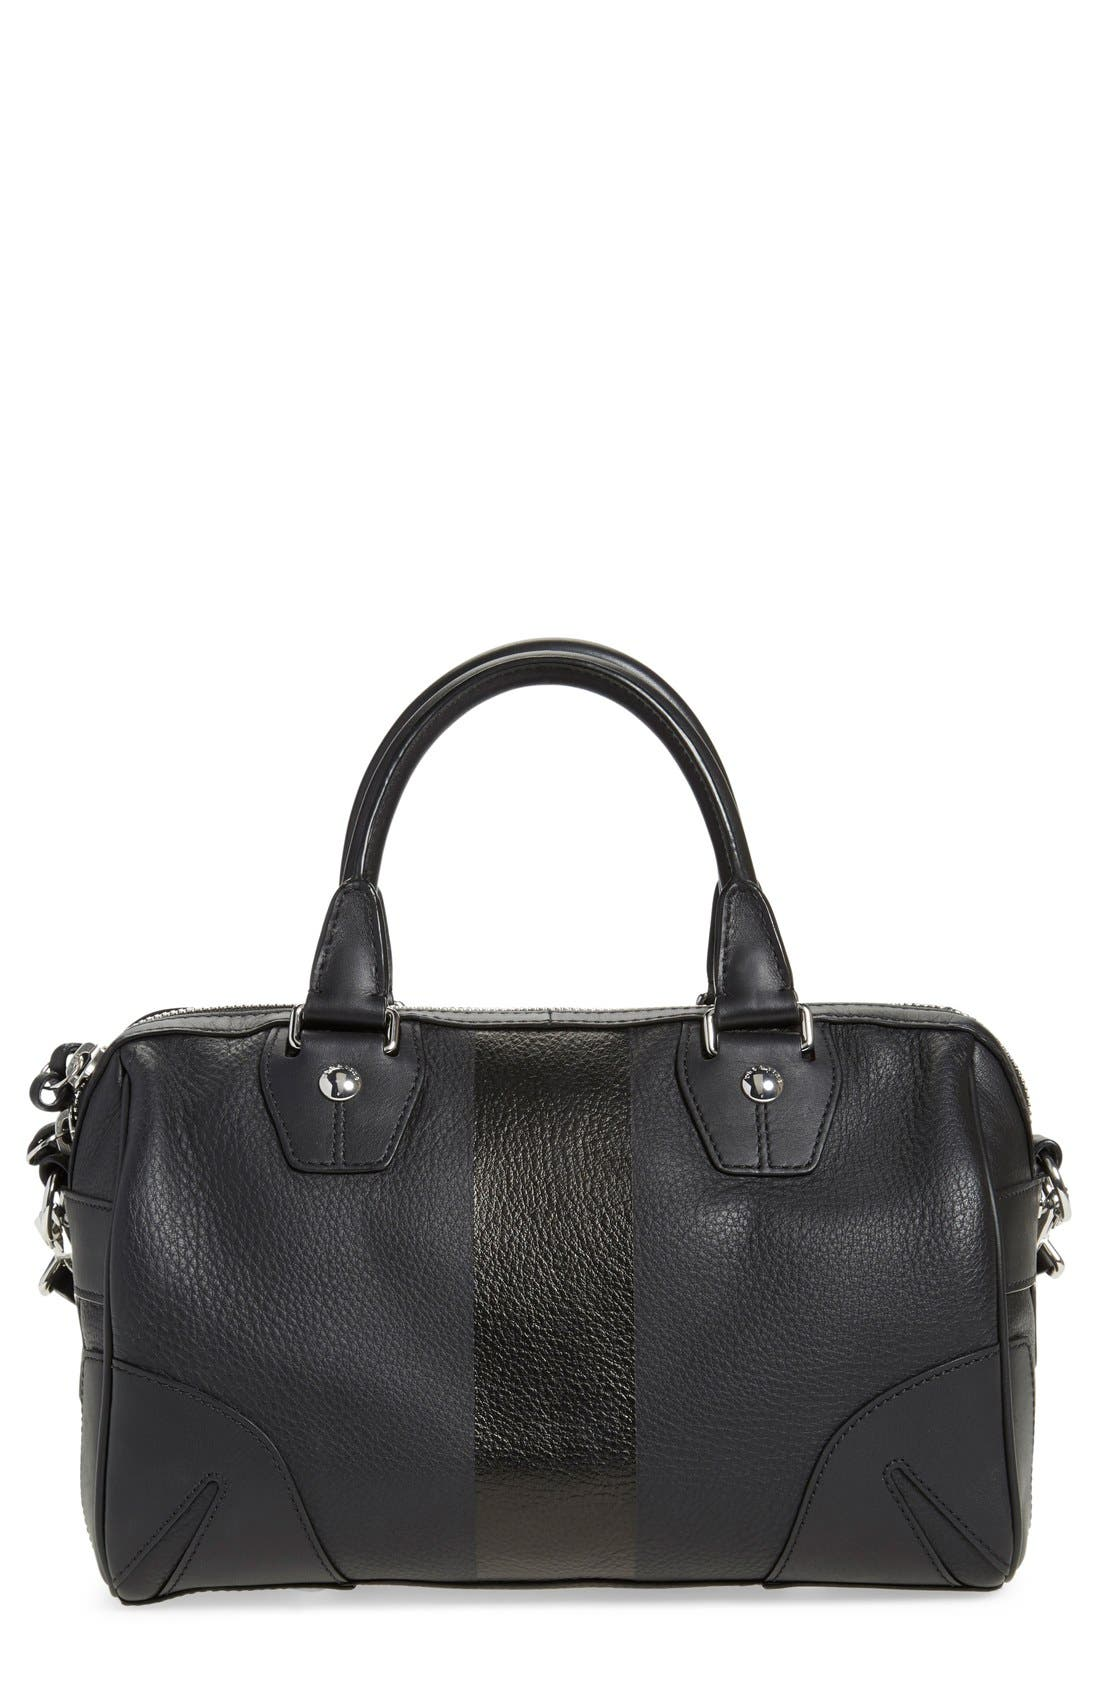 RAG & BONE 'Small Flight' Leather Satchel